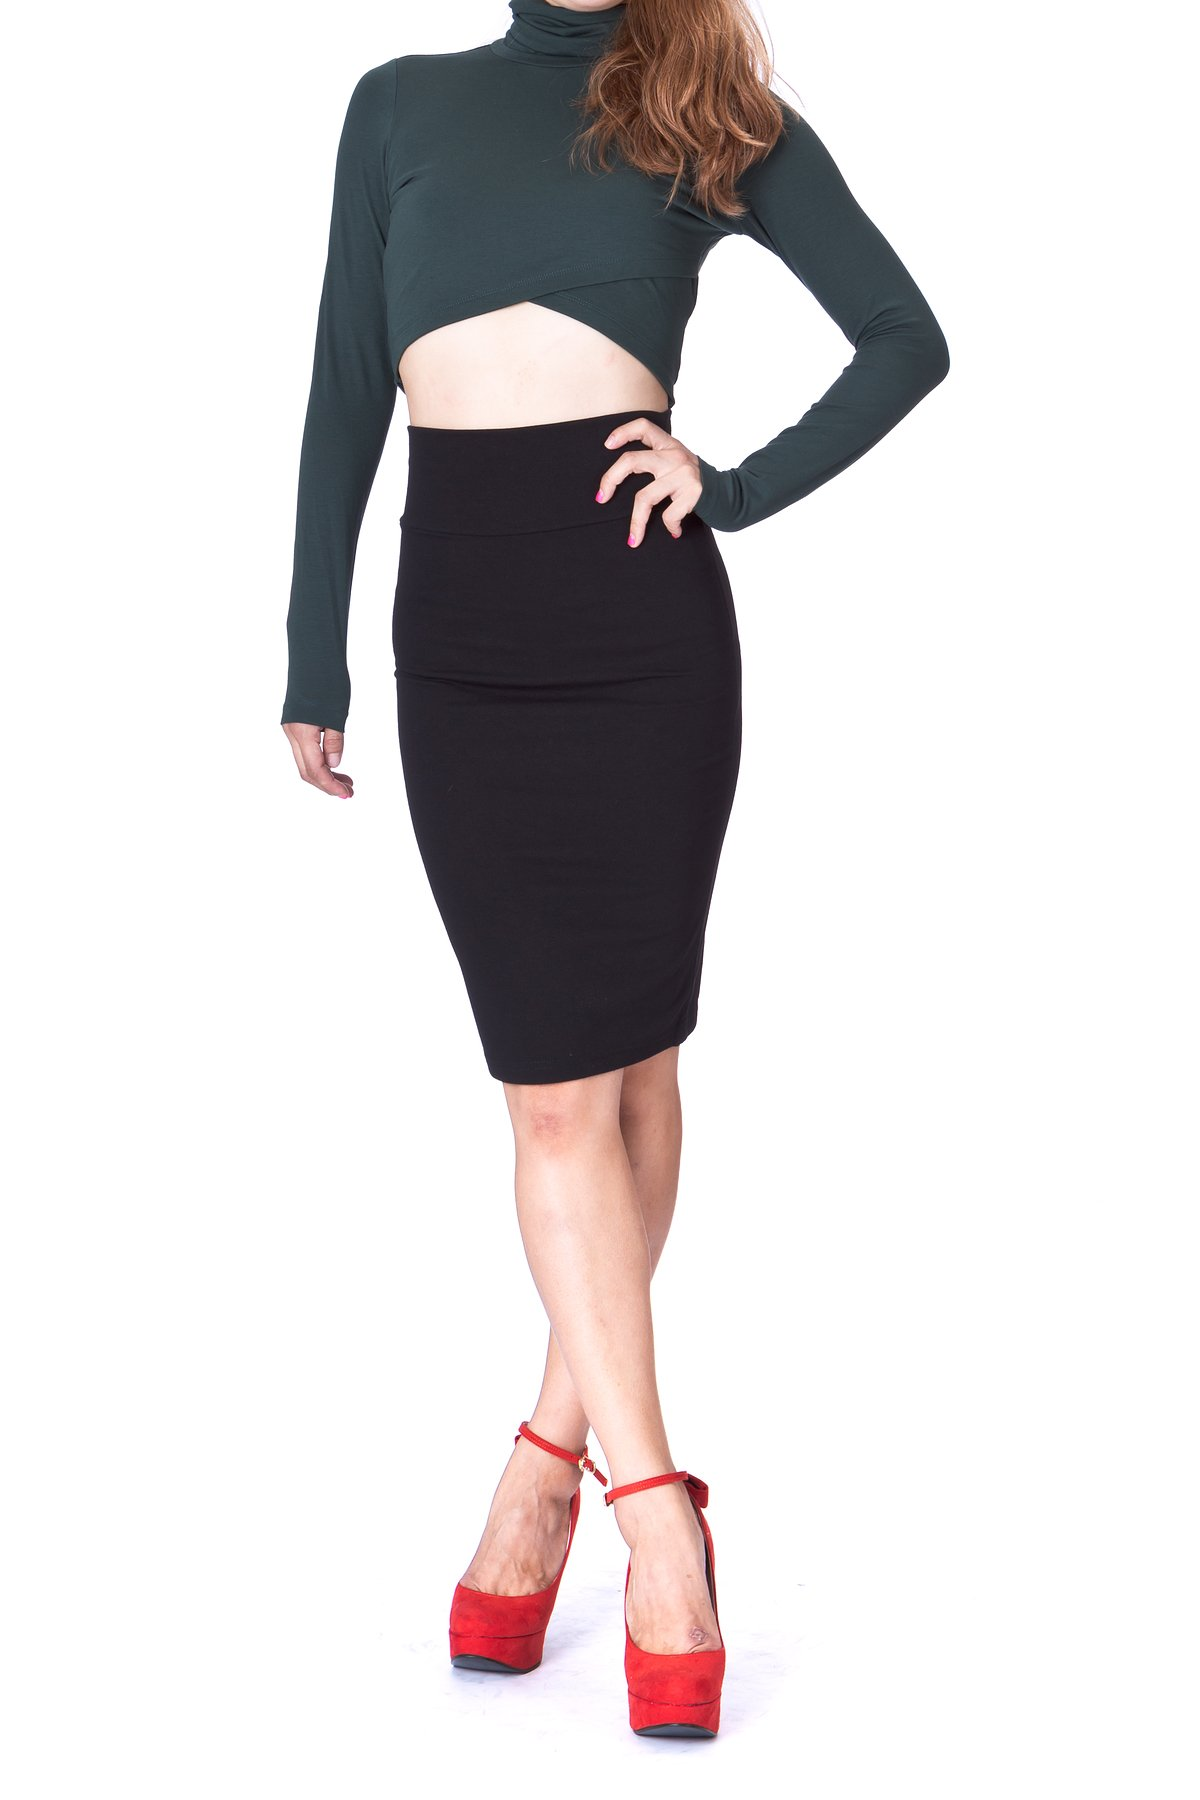 Dani's Choice Every Occasion Stretch Pull-on Wide High Waist Bodycon Pencil Knee Length Midi Skirt (L, Black)